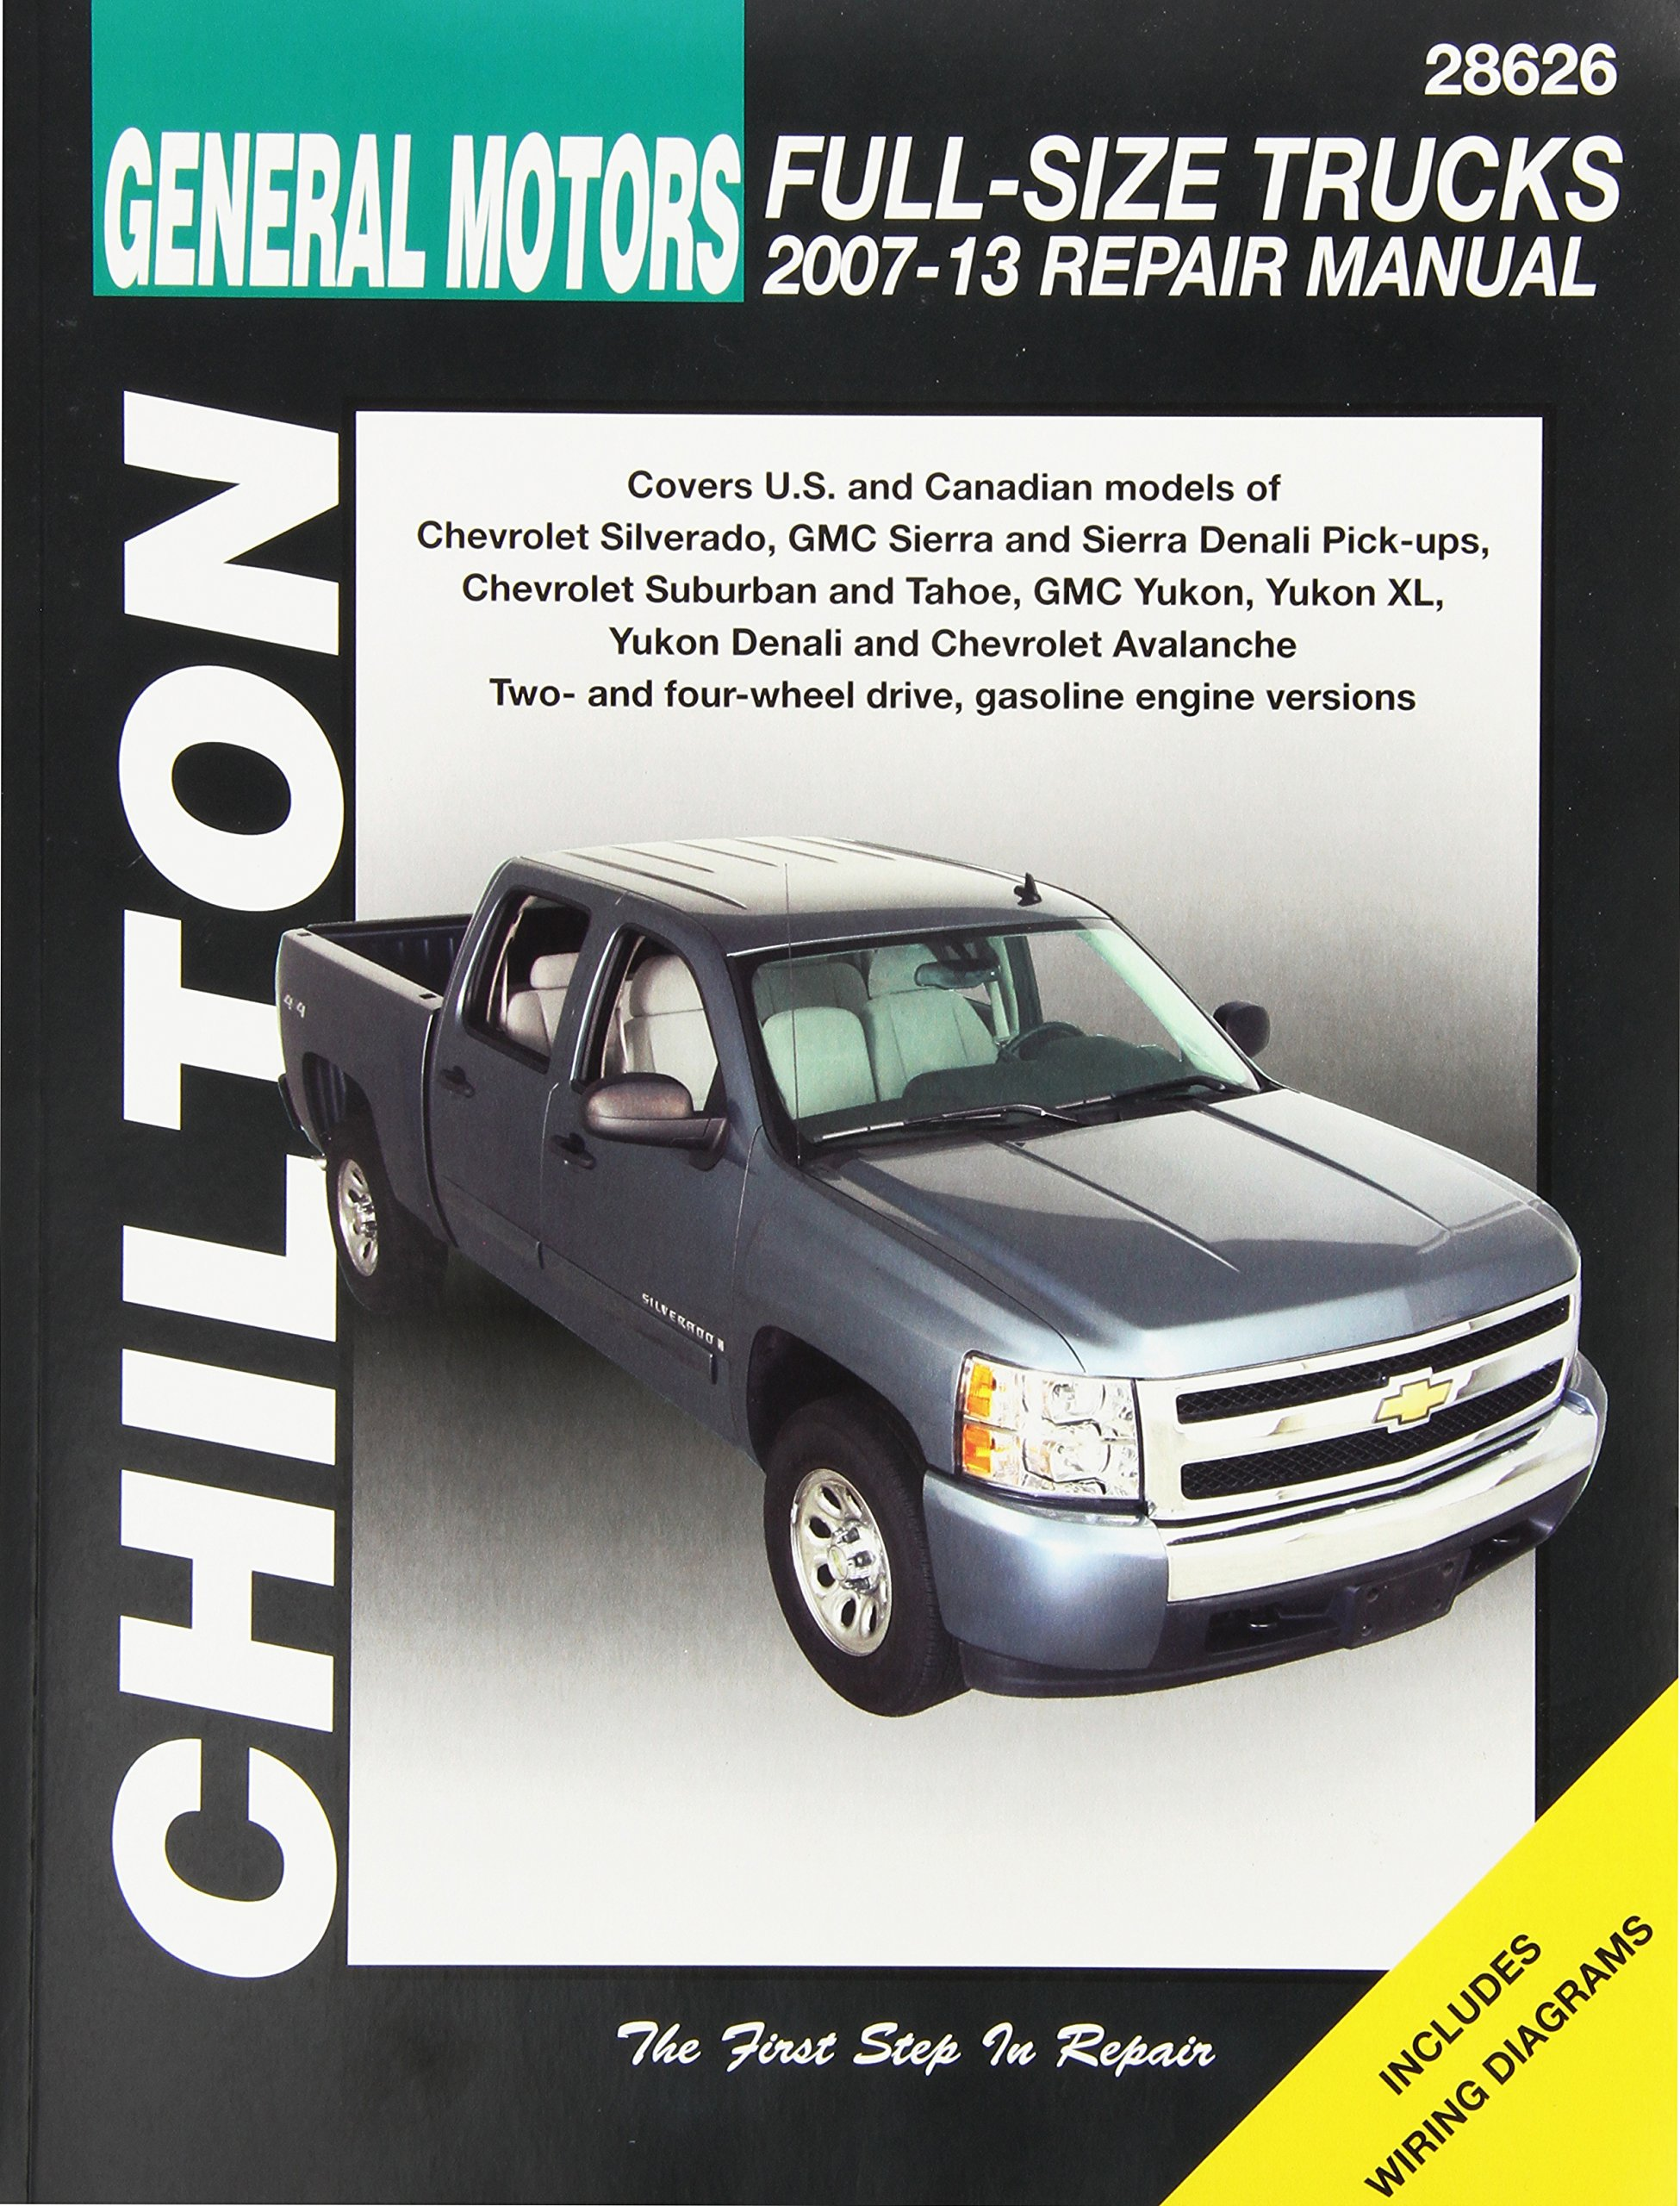 2000 gmc service manual s daily instruction manual guides u2022 rh testingwordpress co 2000 GMC Sierra Lifted 2000 GMC Sierra Lifted